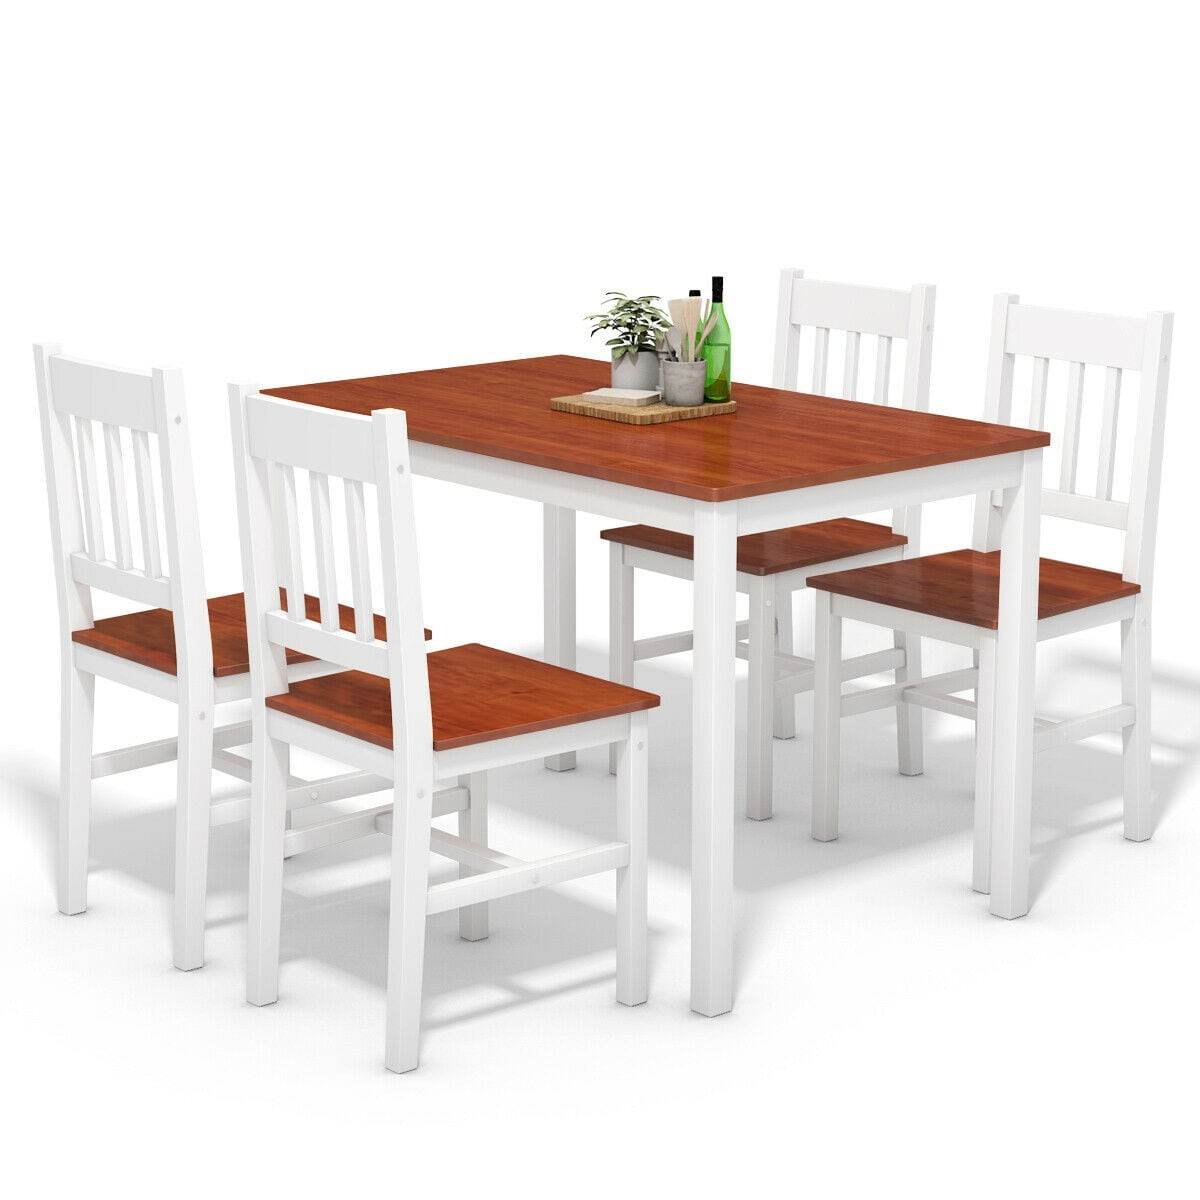 Costway 5pcs Pine Wood Dinette Dining Set Table And 4 Chairs Home Kitchen Furniture White Brown